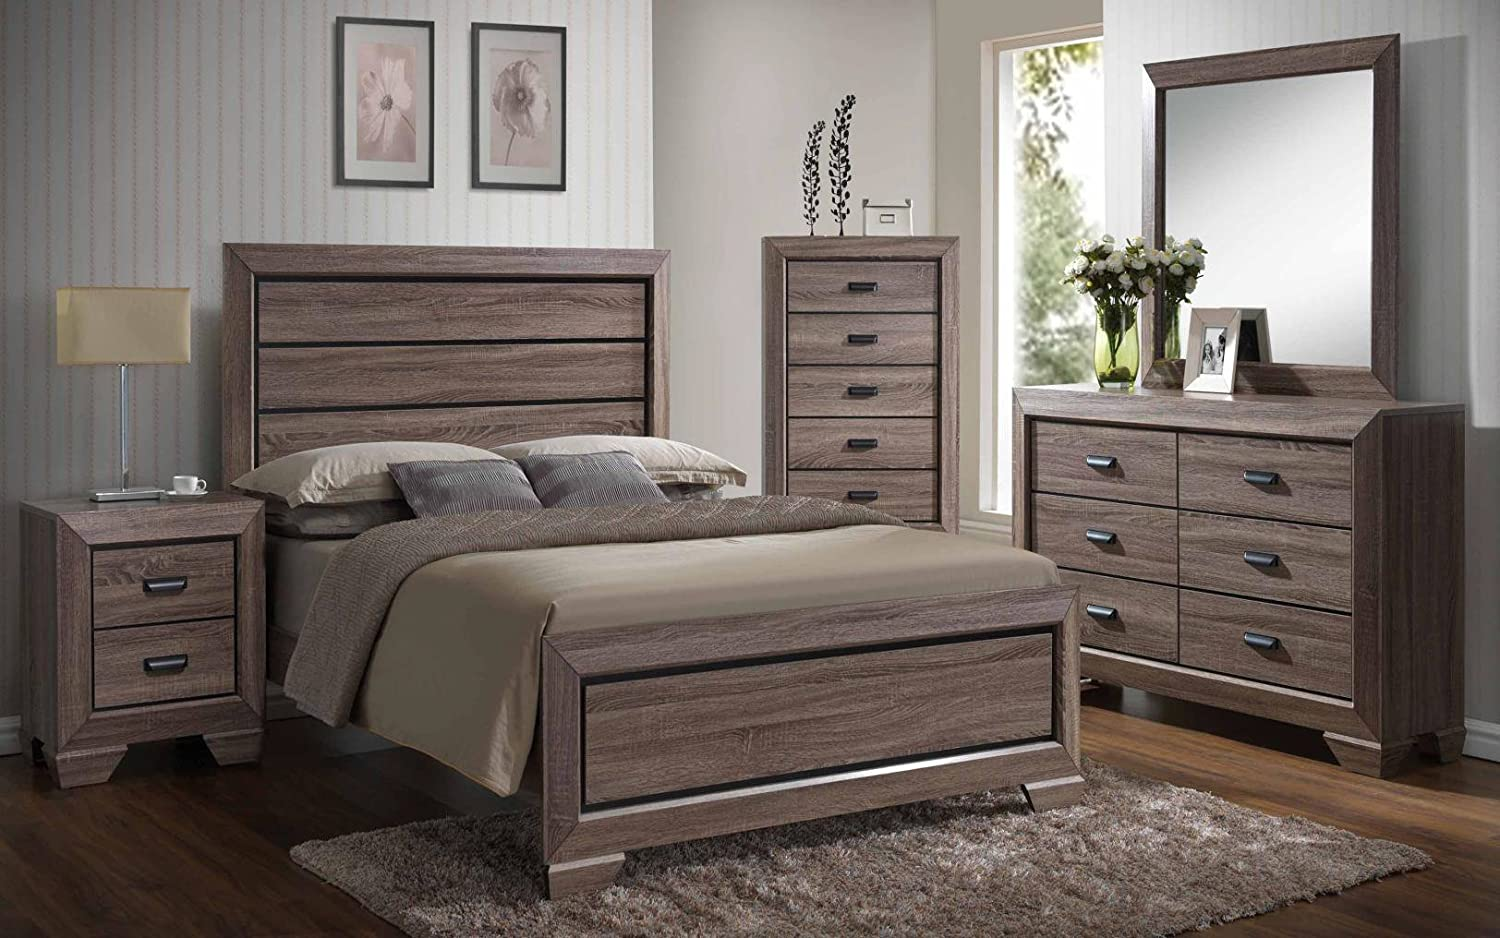 Awe Inspiring Kings Brand 6 Piece Queen Size Black Brown Wood Modern Bedroom Furniture Set Bed Dresser Mirror Chest 2 Night Stands Home Interior And Landscaping Spoatsignezvosmurscom